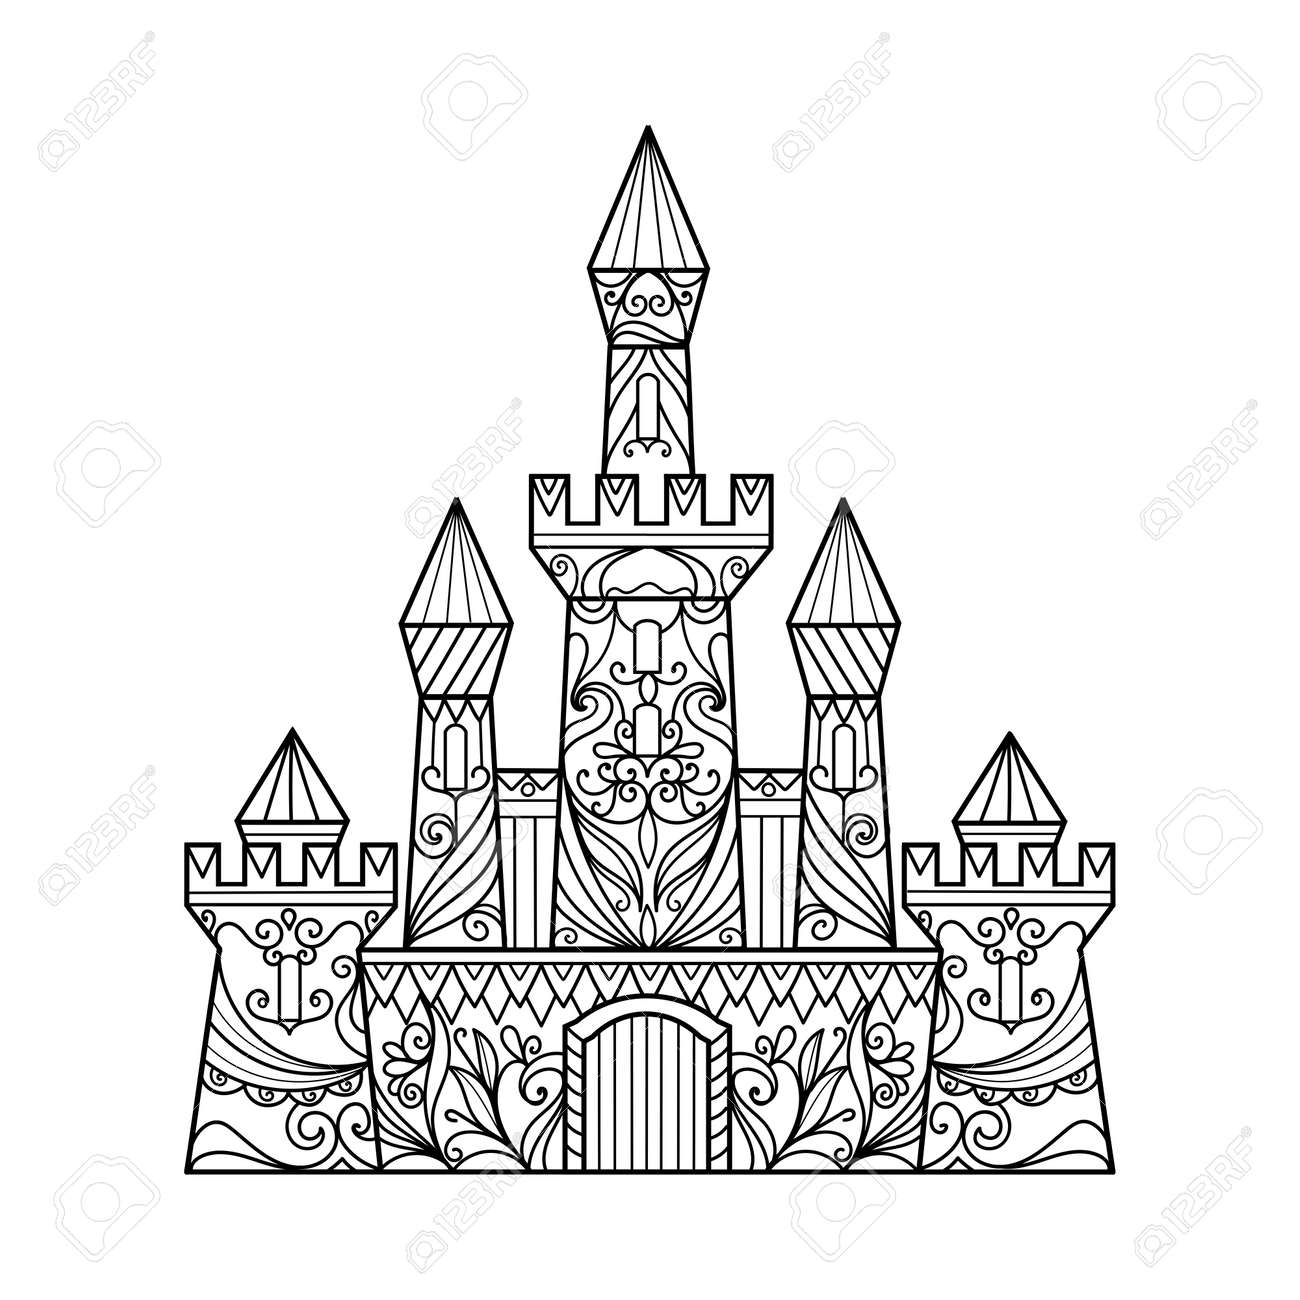 Coloring book landmark for adults - Castle Coloring Book For Adults Vector Illustration Anti Stress Coloring For Adult Zentangle